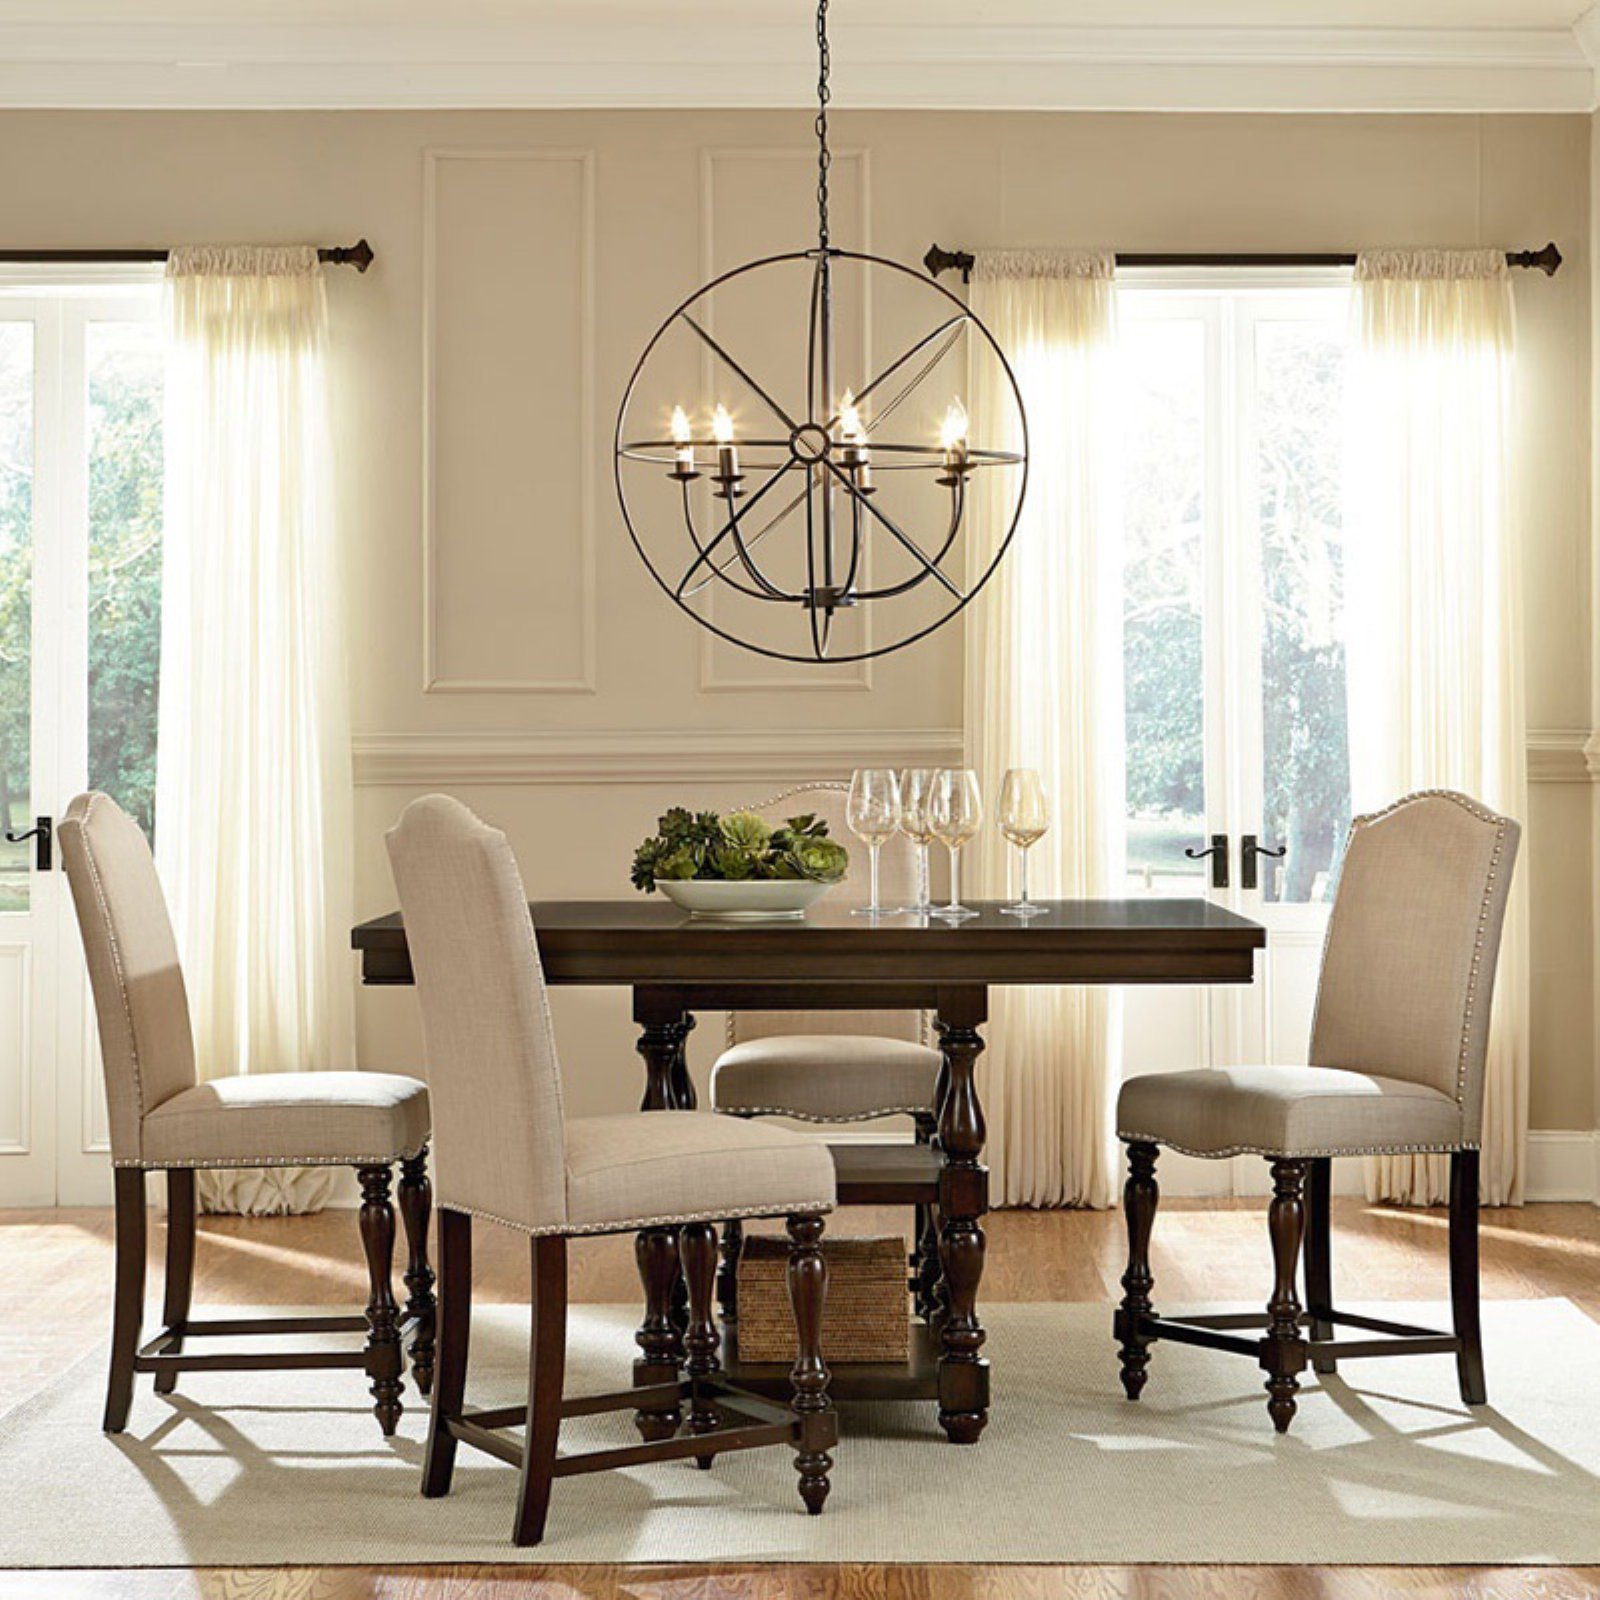 Baxton Studio Zachary Chic French 5 Piece Square Counter Height Dining Table Set